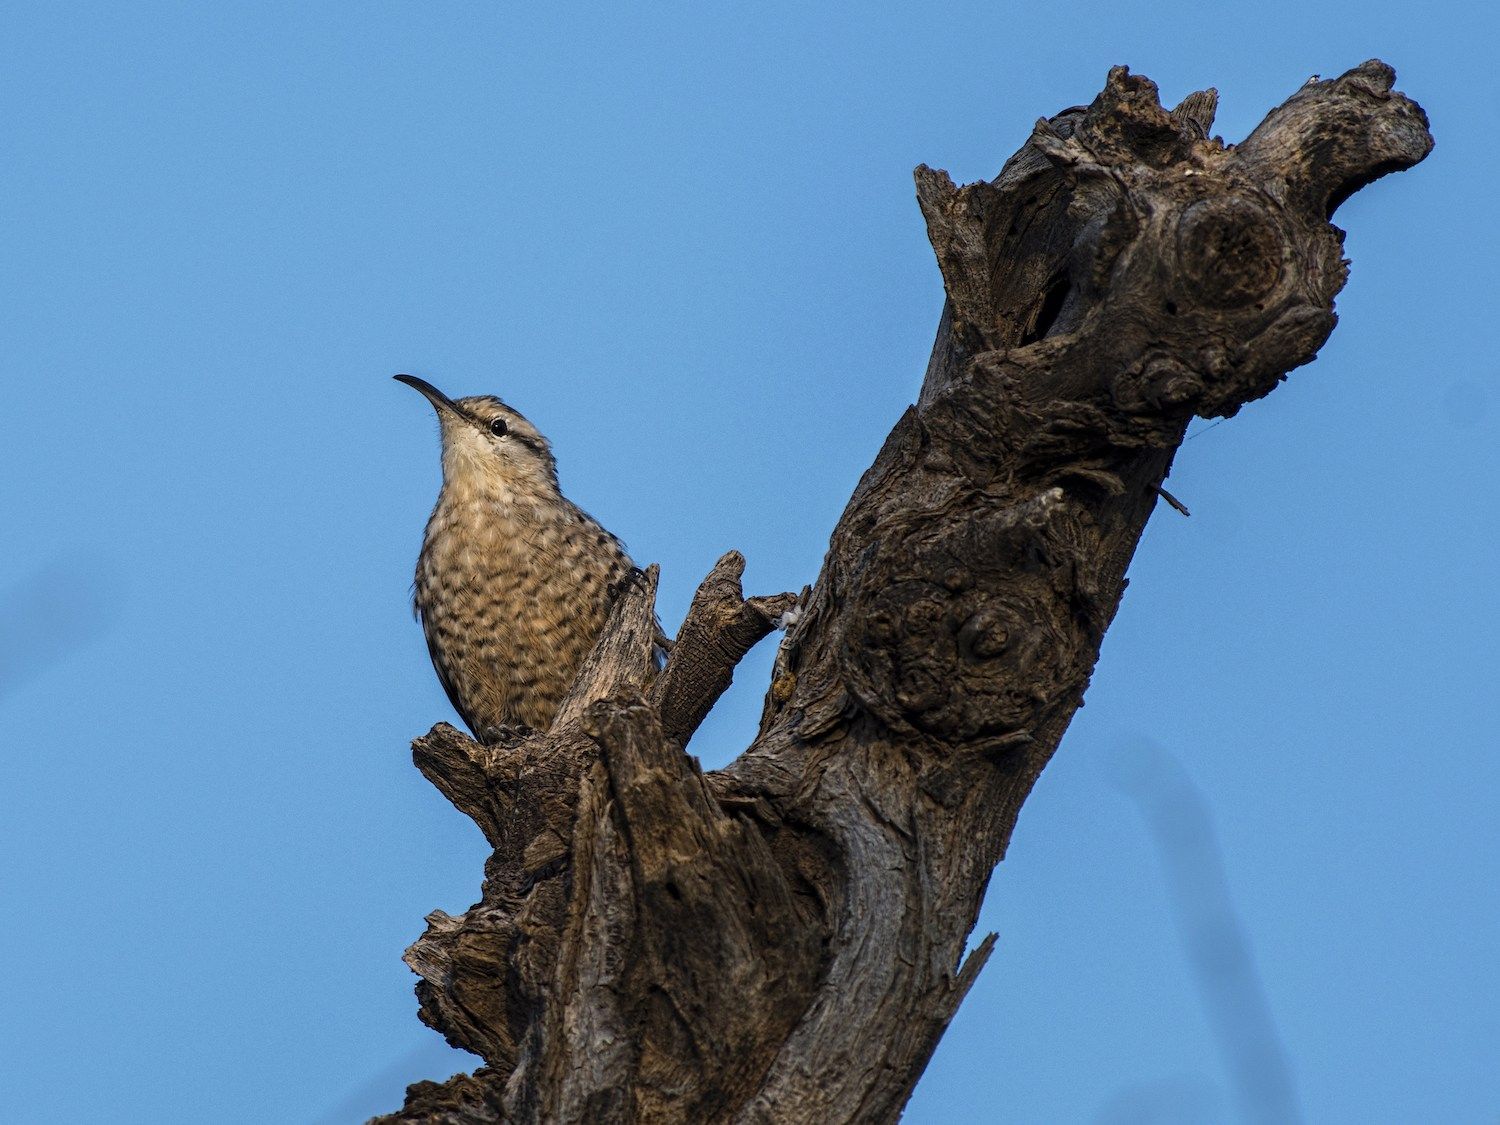 The Indian spotted creeper usually begins foraging from the base of a tree, climbing upwards, before flying to the next tree. Photo: Arpan Saha  Endemic to India, the spotted creeper is found in dry regions of the country. 